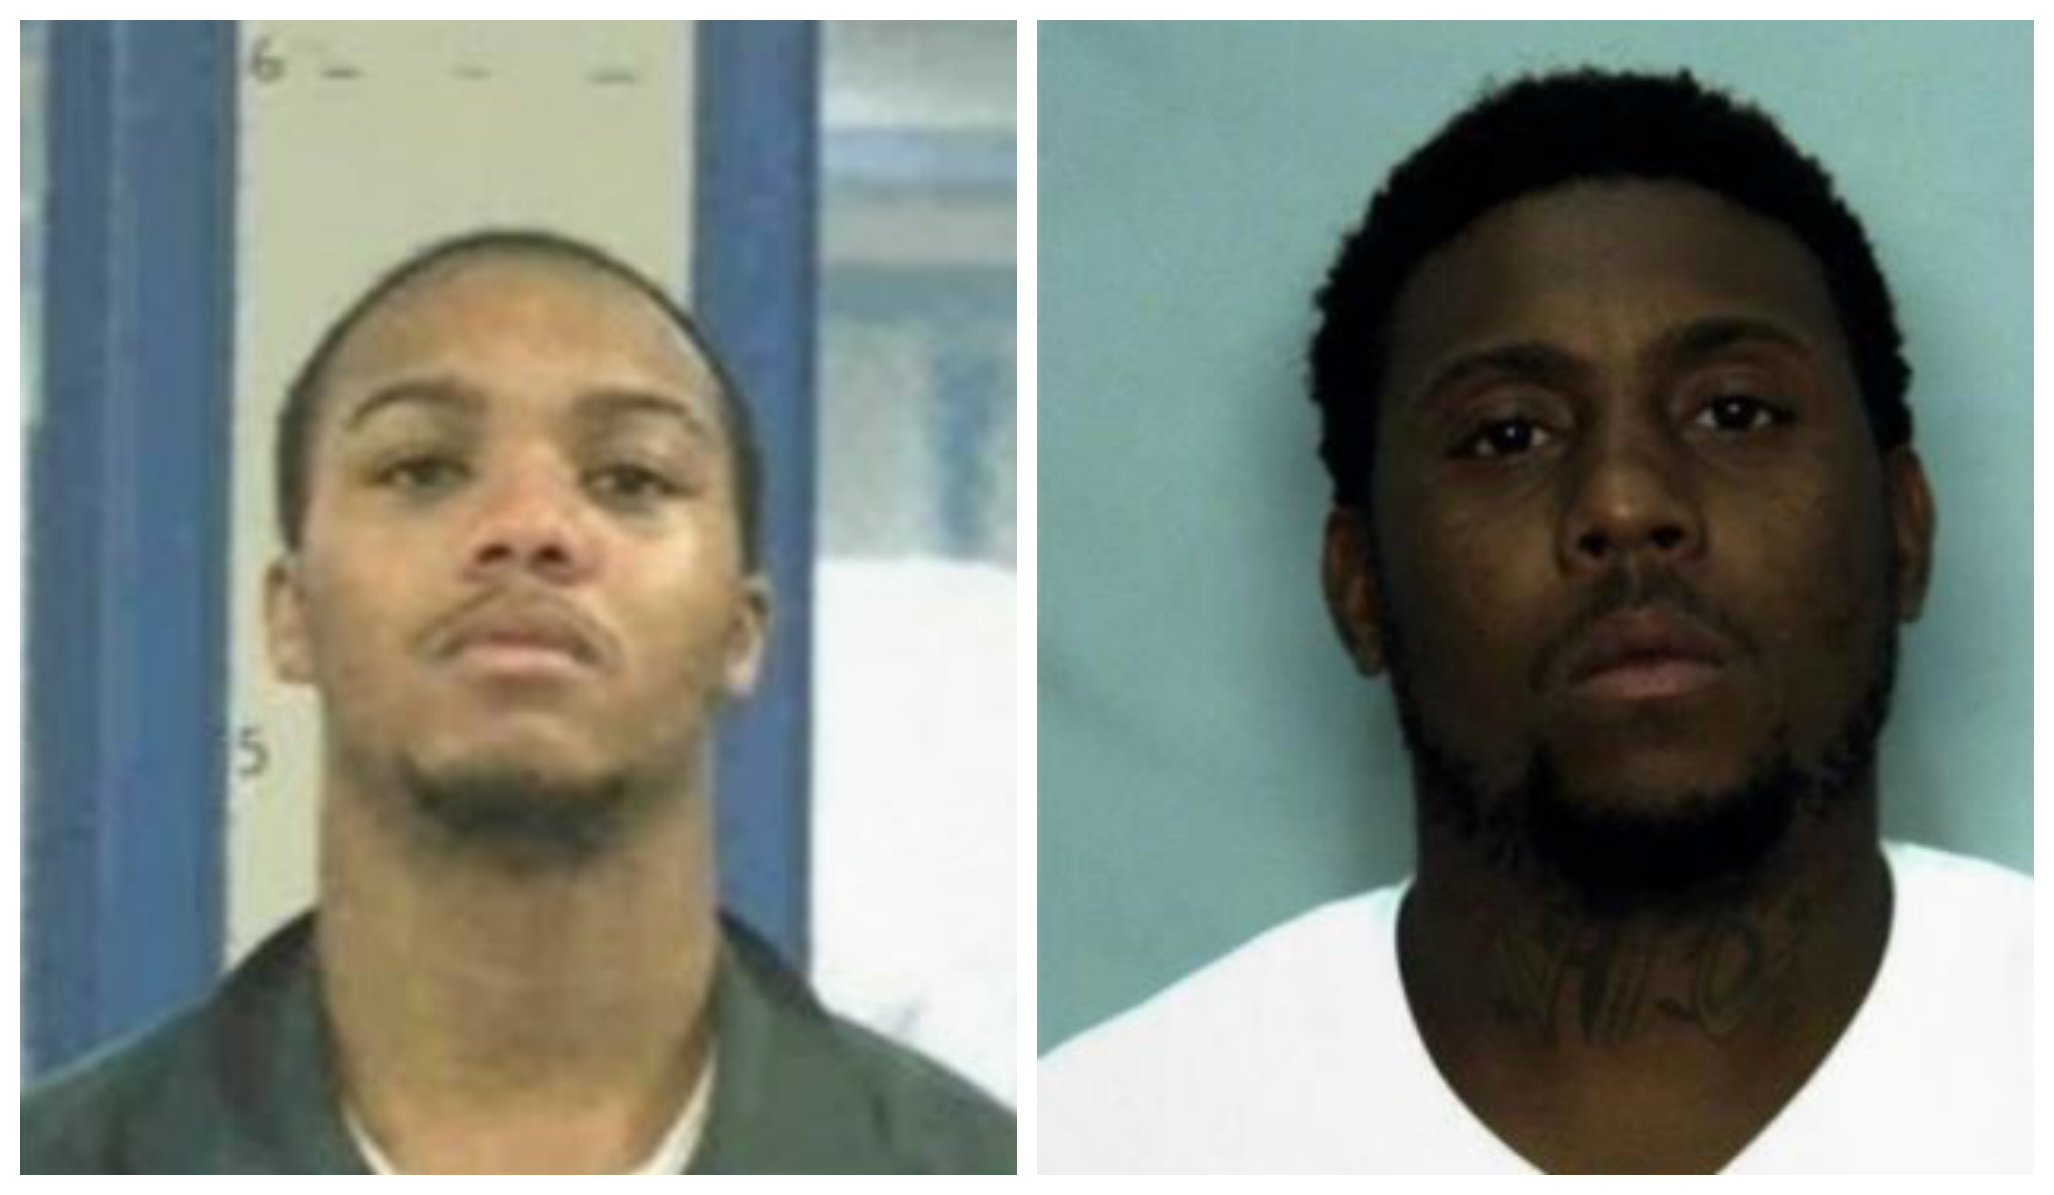 Alvaughn Lamont Davis (Courtesy Chesapeake City Jail), Anthony Foye (Courtesy Western Tidewater Regional Jail),_526265